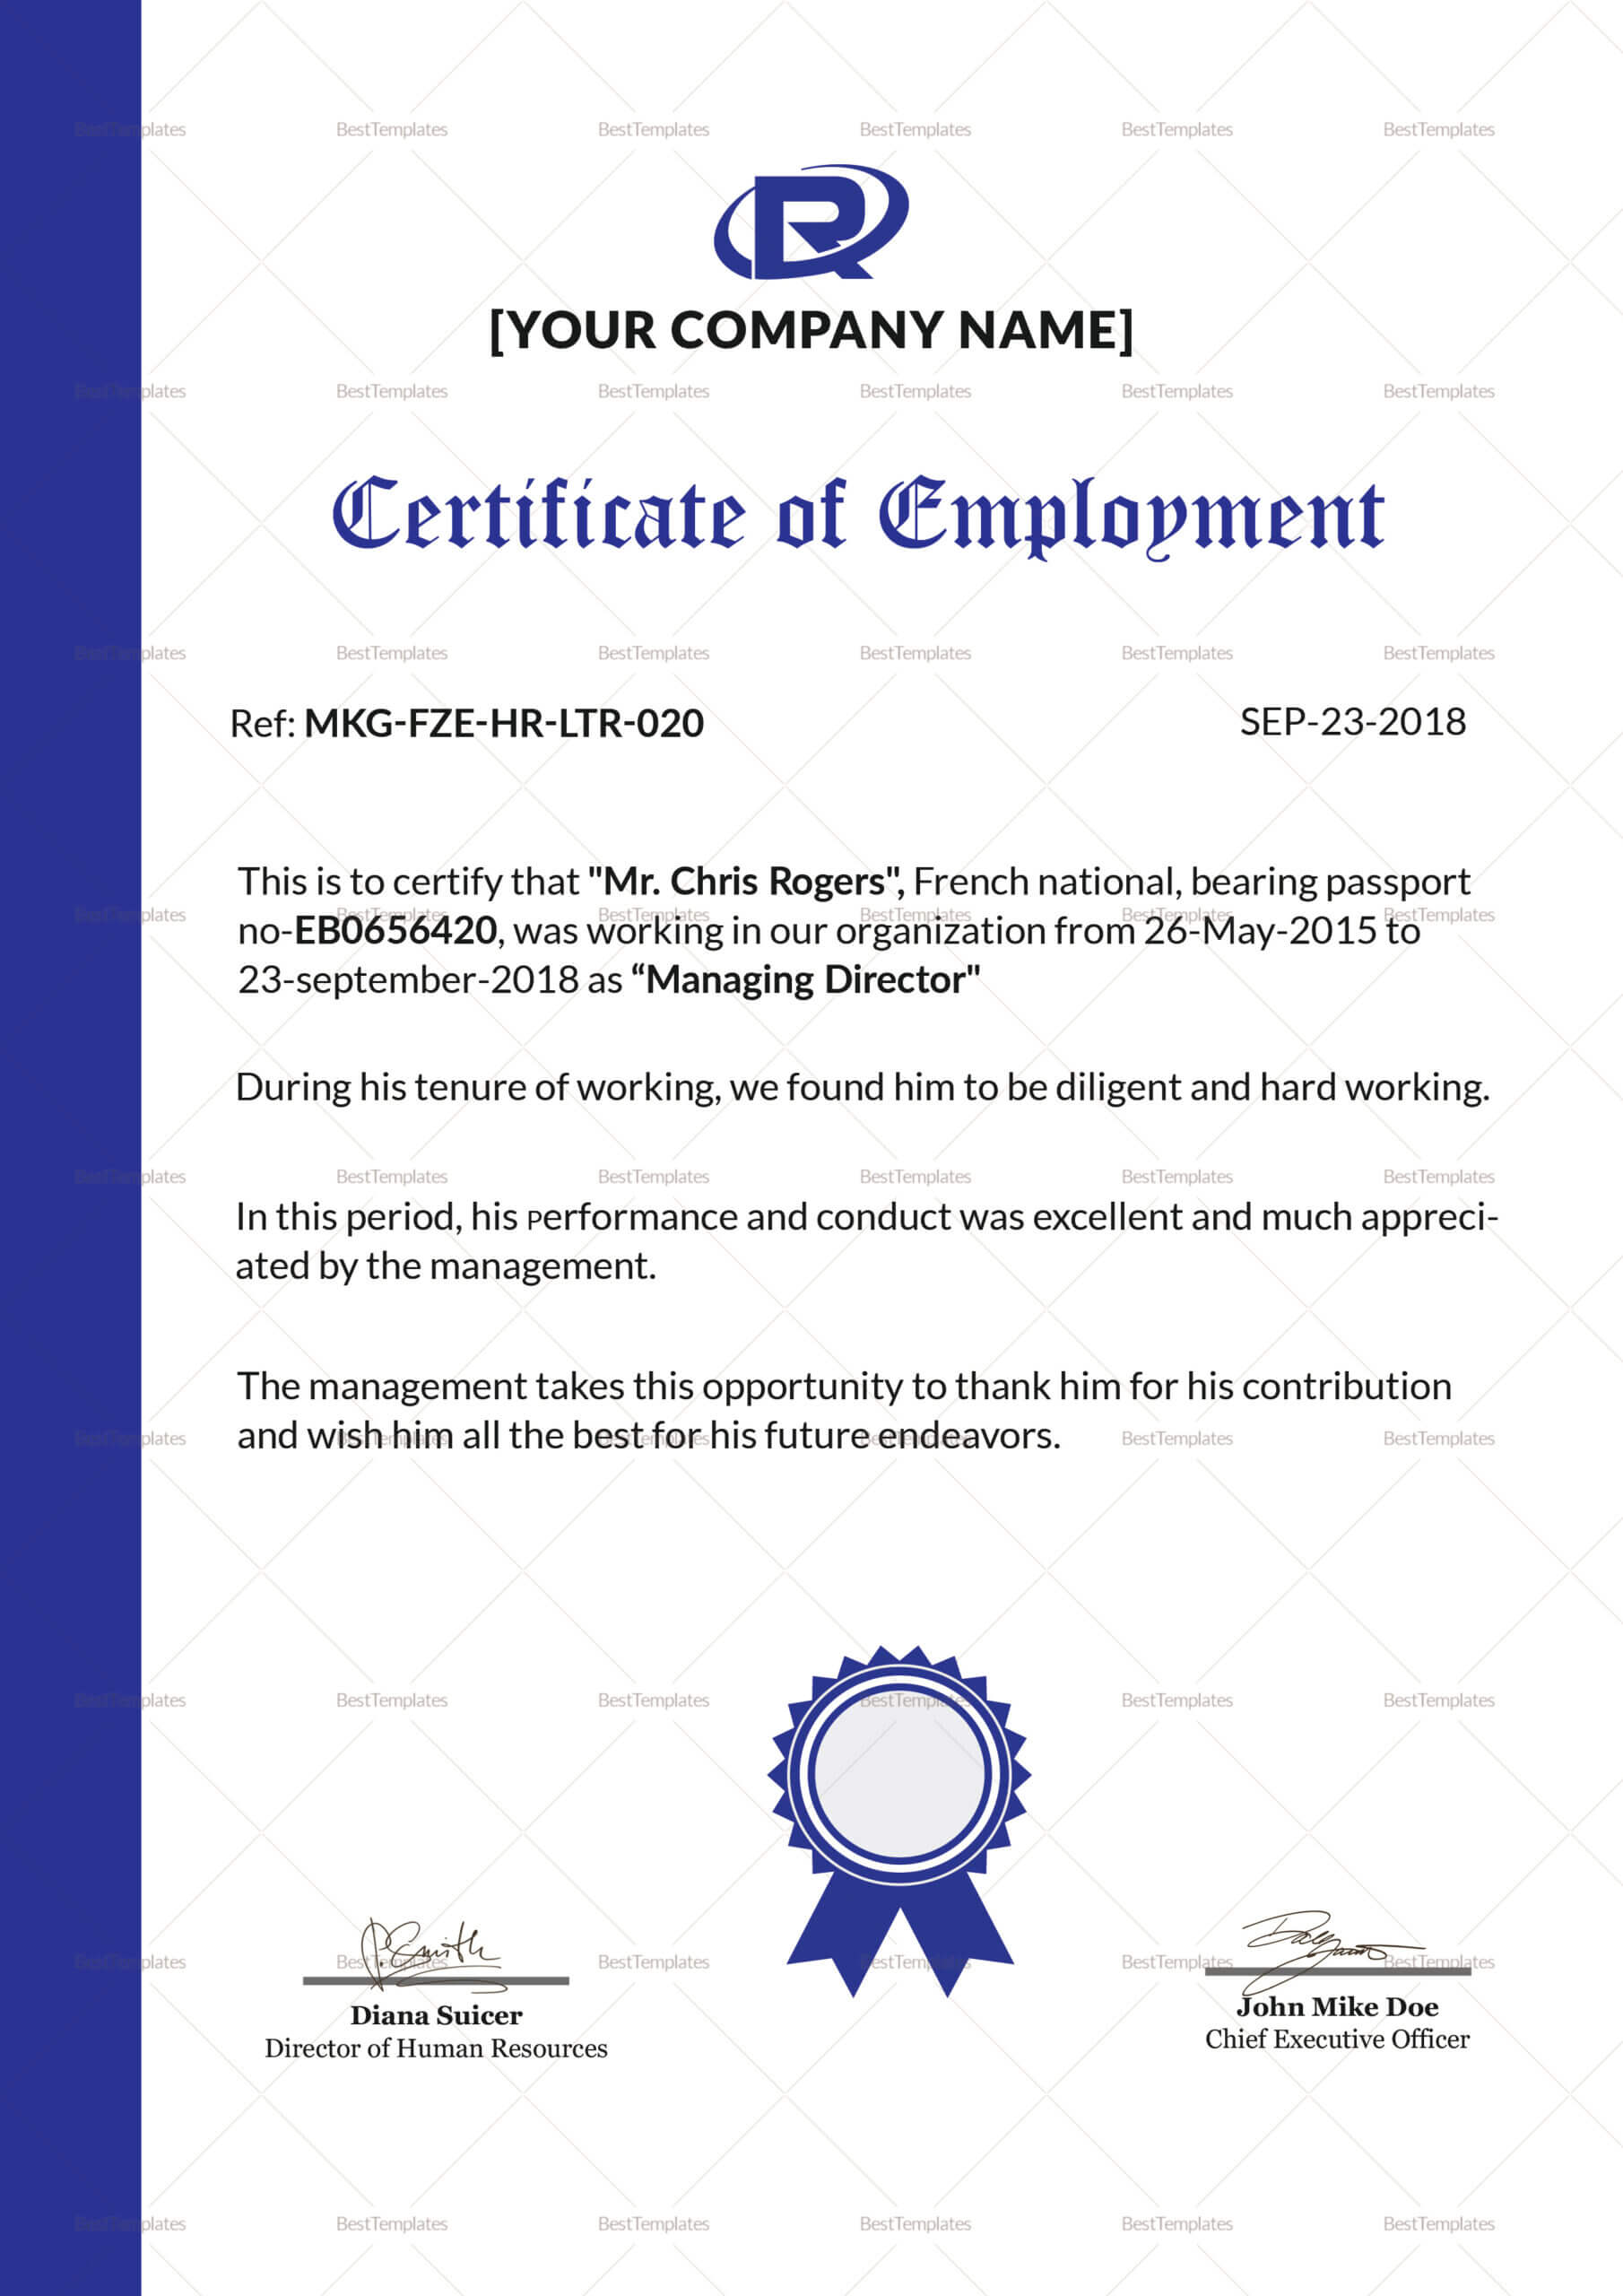 006 Certificate Of Employment Template Sample Impressive Inside Sample Certificate Employment Template